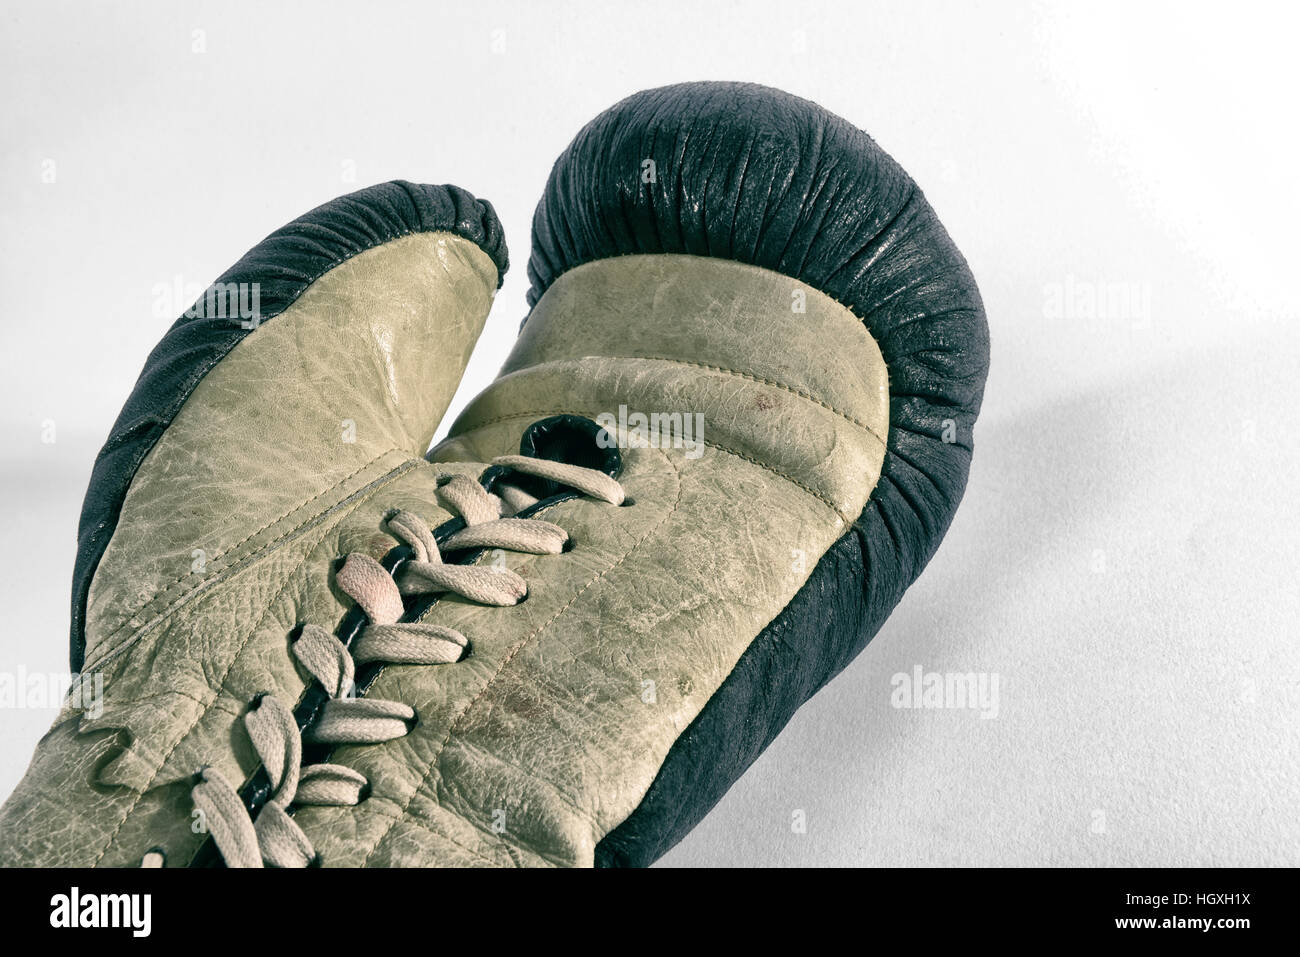 Crop view of single vintage boxing leather glove with laces laying on white surface - Stock Image